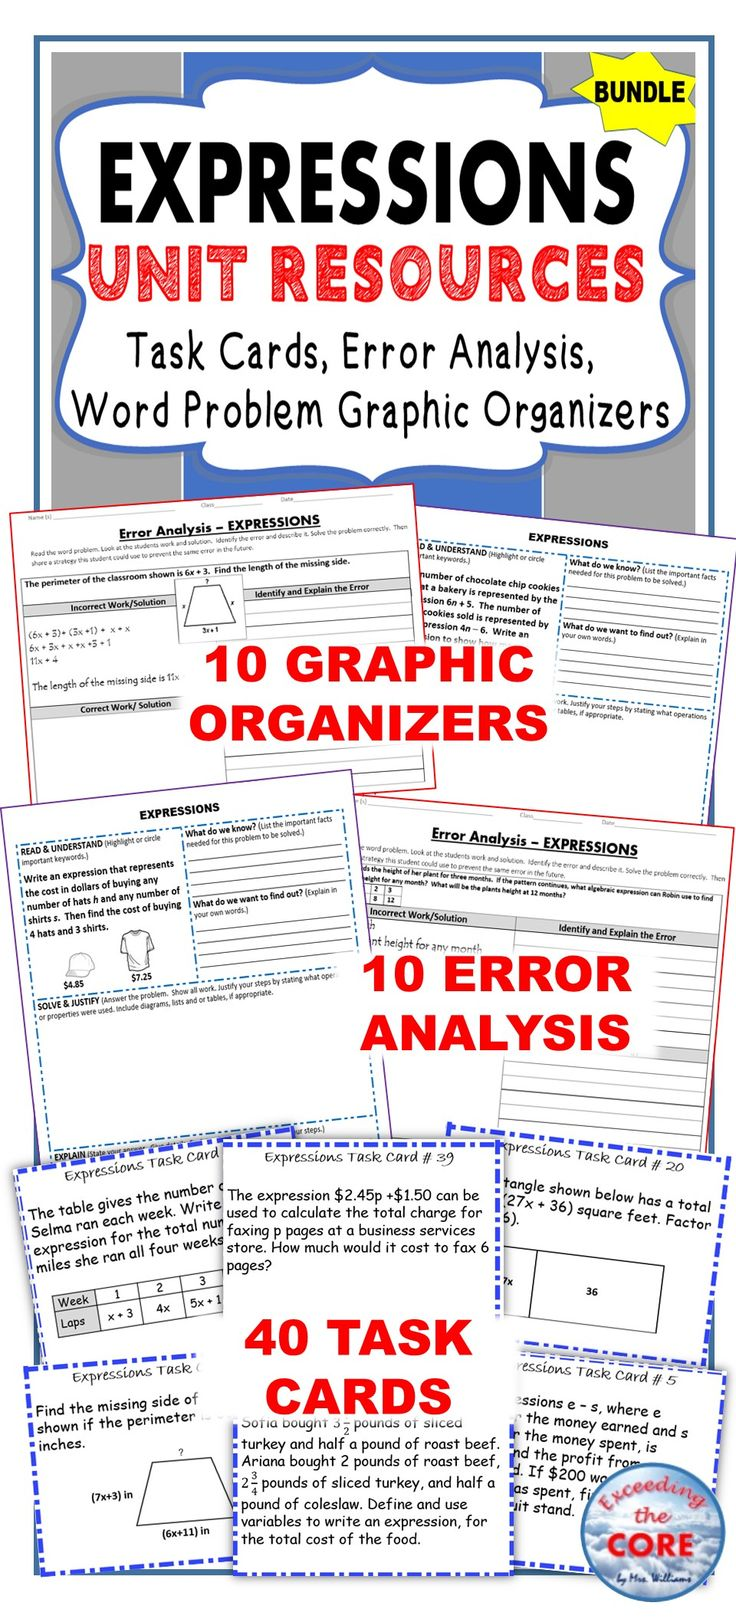 EXPRESSIONS UNIT RESOURCES BUNDLE - Includes 40 task cards, 10 error analysis activities and 10 problem solving graphic organizers (a total of 60 real-world word problems). Perfect for warm-ups, cooperative learning, spiral review, math centers, assessment prep and homework. Topics included: ✔ evaluating algebraic expressions  ✔ writing algebraic expressions ✔ simplifying algebraic expressions ✔ adding linear expressions ✔ subtracting linear expressions ✔ factoring linear expressions: EXPRESSIONS UNIT RESOURCES BUNDLE - Includes 40 task cards, 10 error analysis activities and 10 problem solving graphic organizers (a total of 60 real-world word problems). Perfect for warm-ups, cooperative learning, spiral review, math centers, assessment prep and homework. Topics included: ✔ evaluating algebraic expressions  ✔ writing algebraic expressions ✔ simplifying algebraic expressions ✔ adding linear expressions ✔ subtracting linear expressions ✔ factoring linear expressions